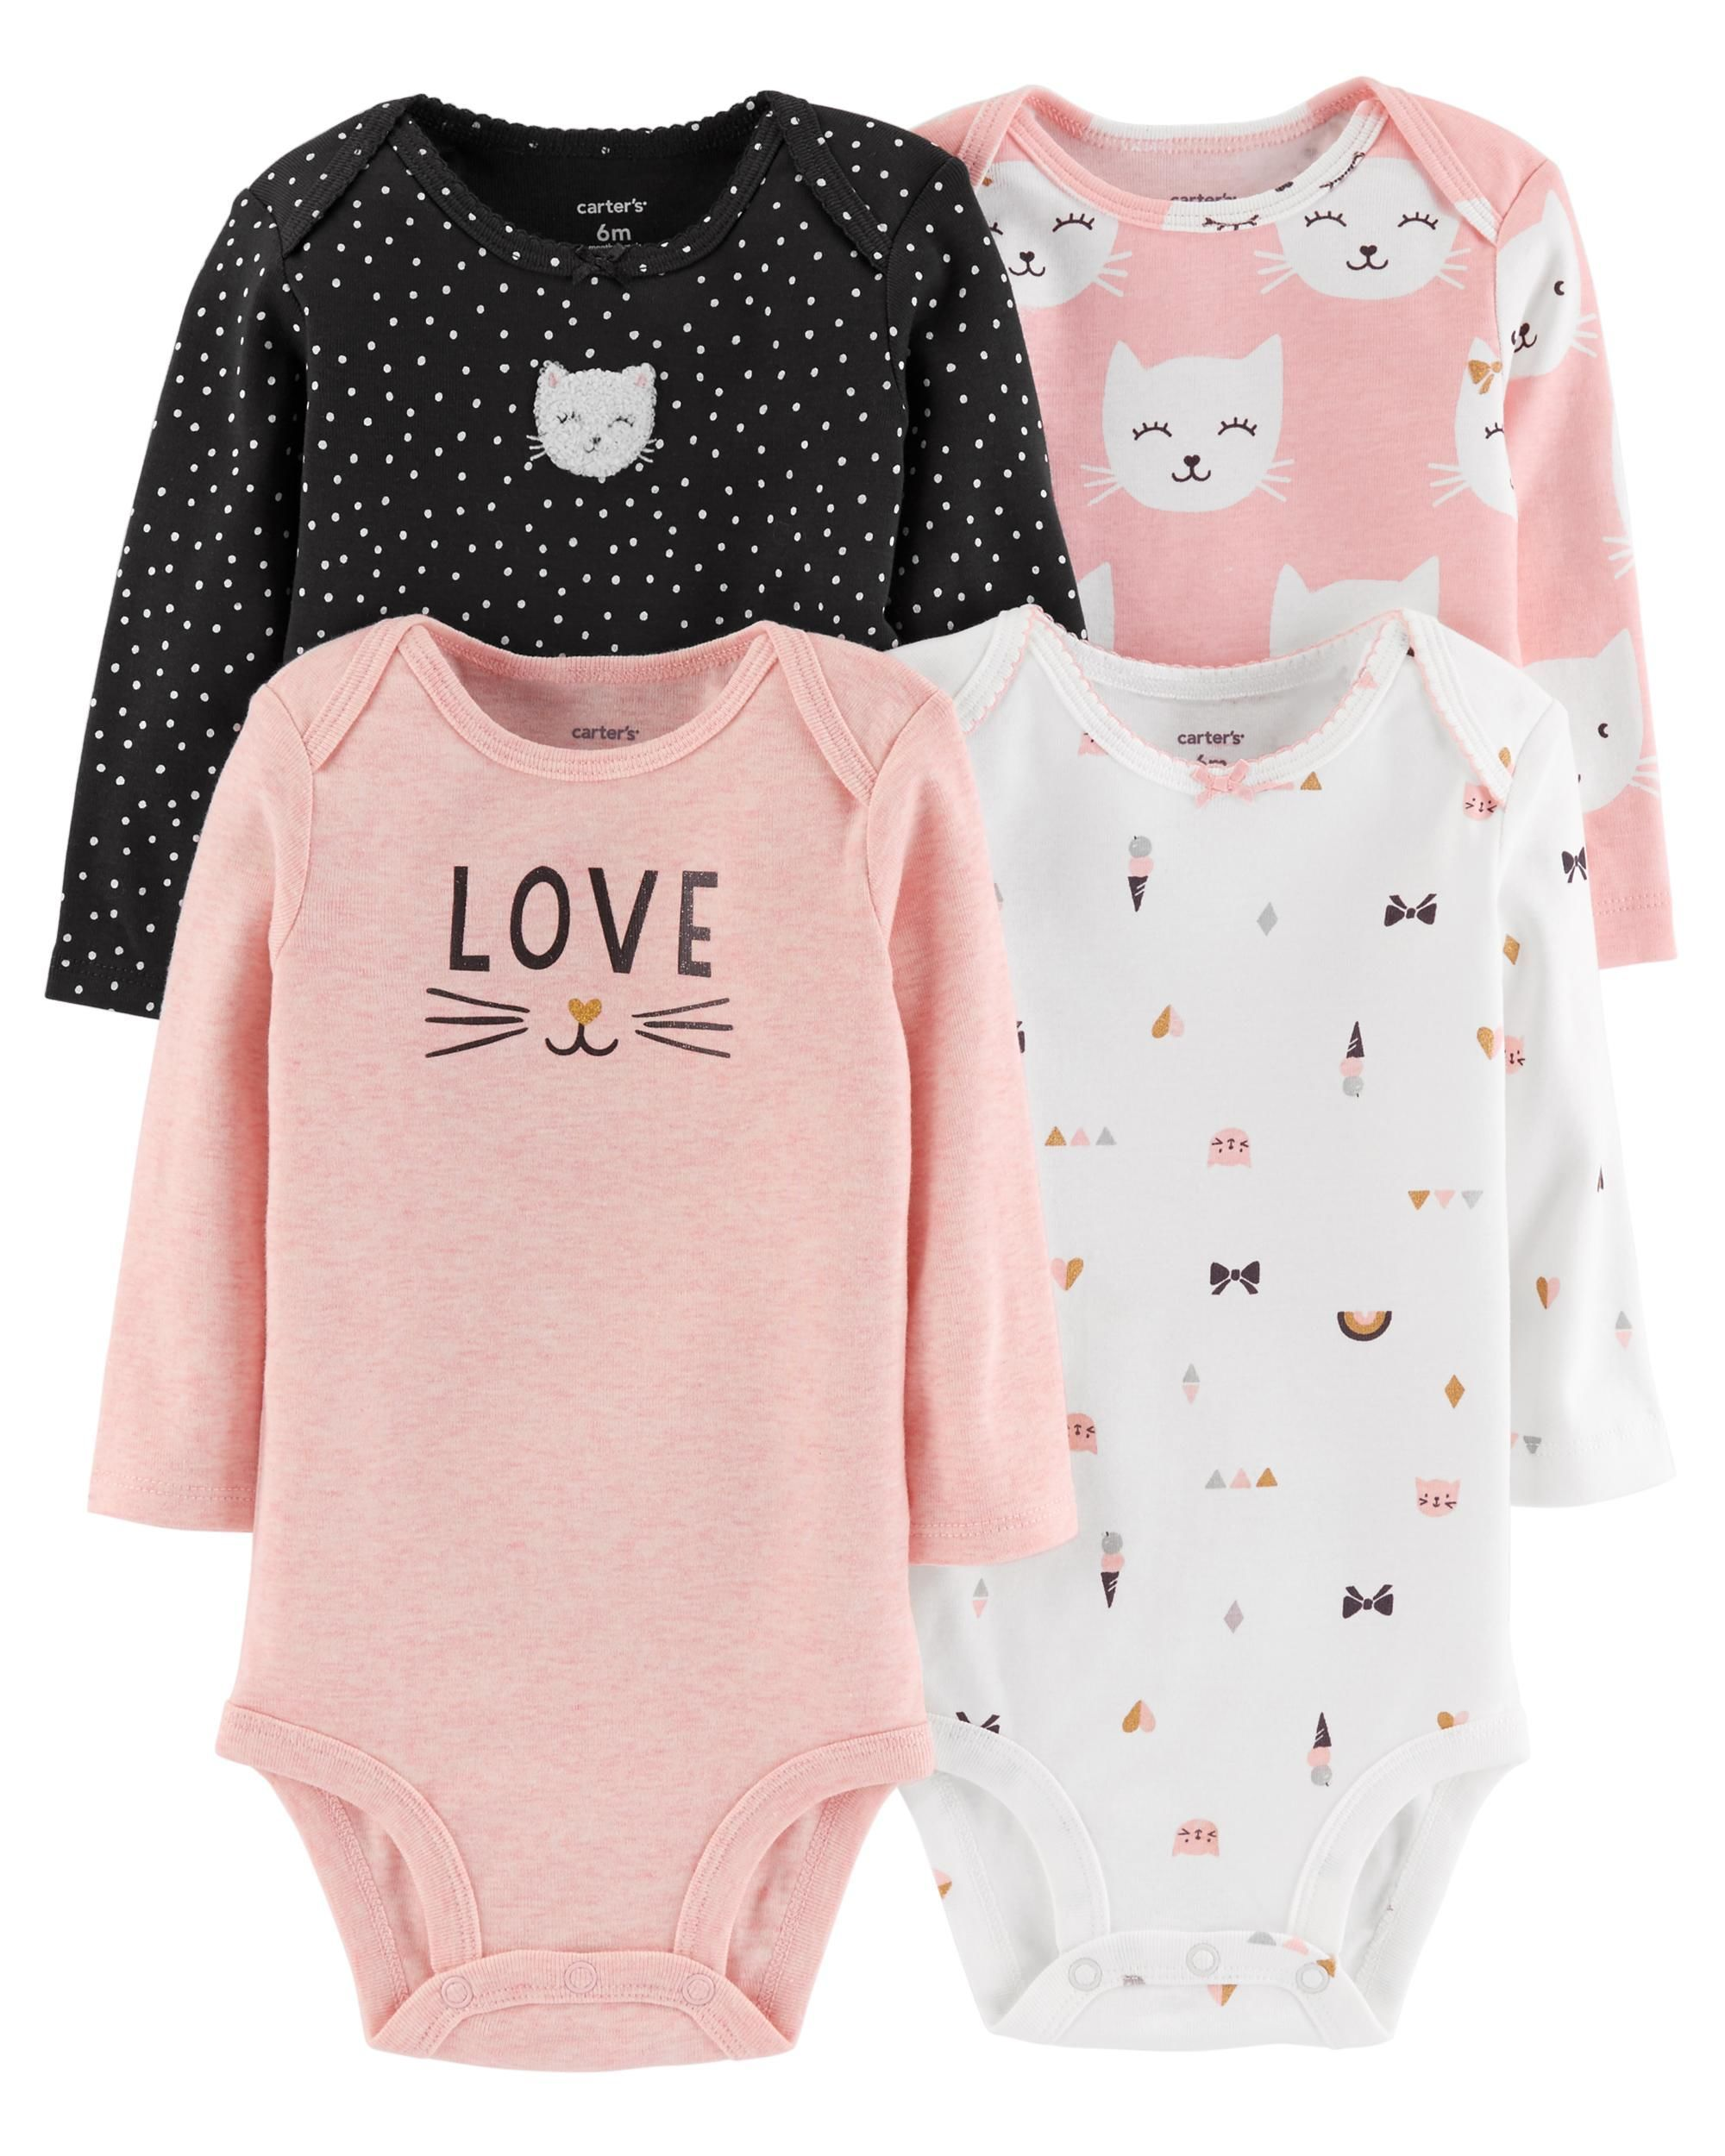 e9834a9f8 4-Pack Long-Sleeve Original Bodysuits | Baby Al | Carters baby girl ...